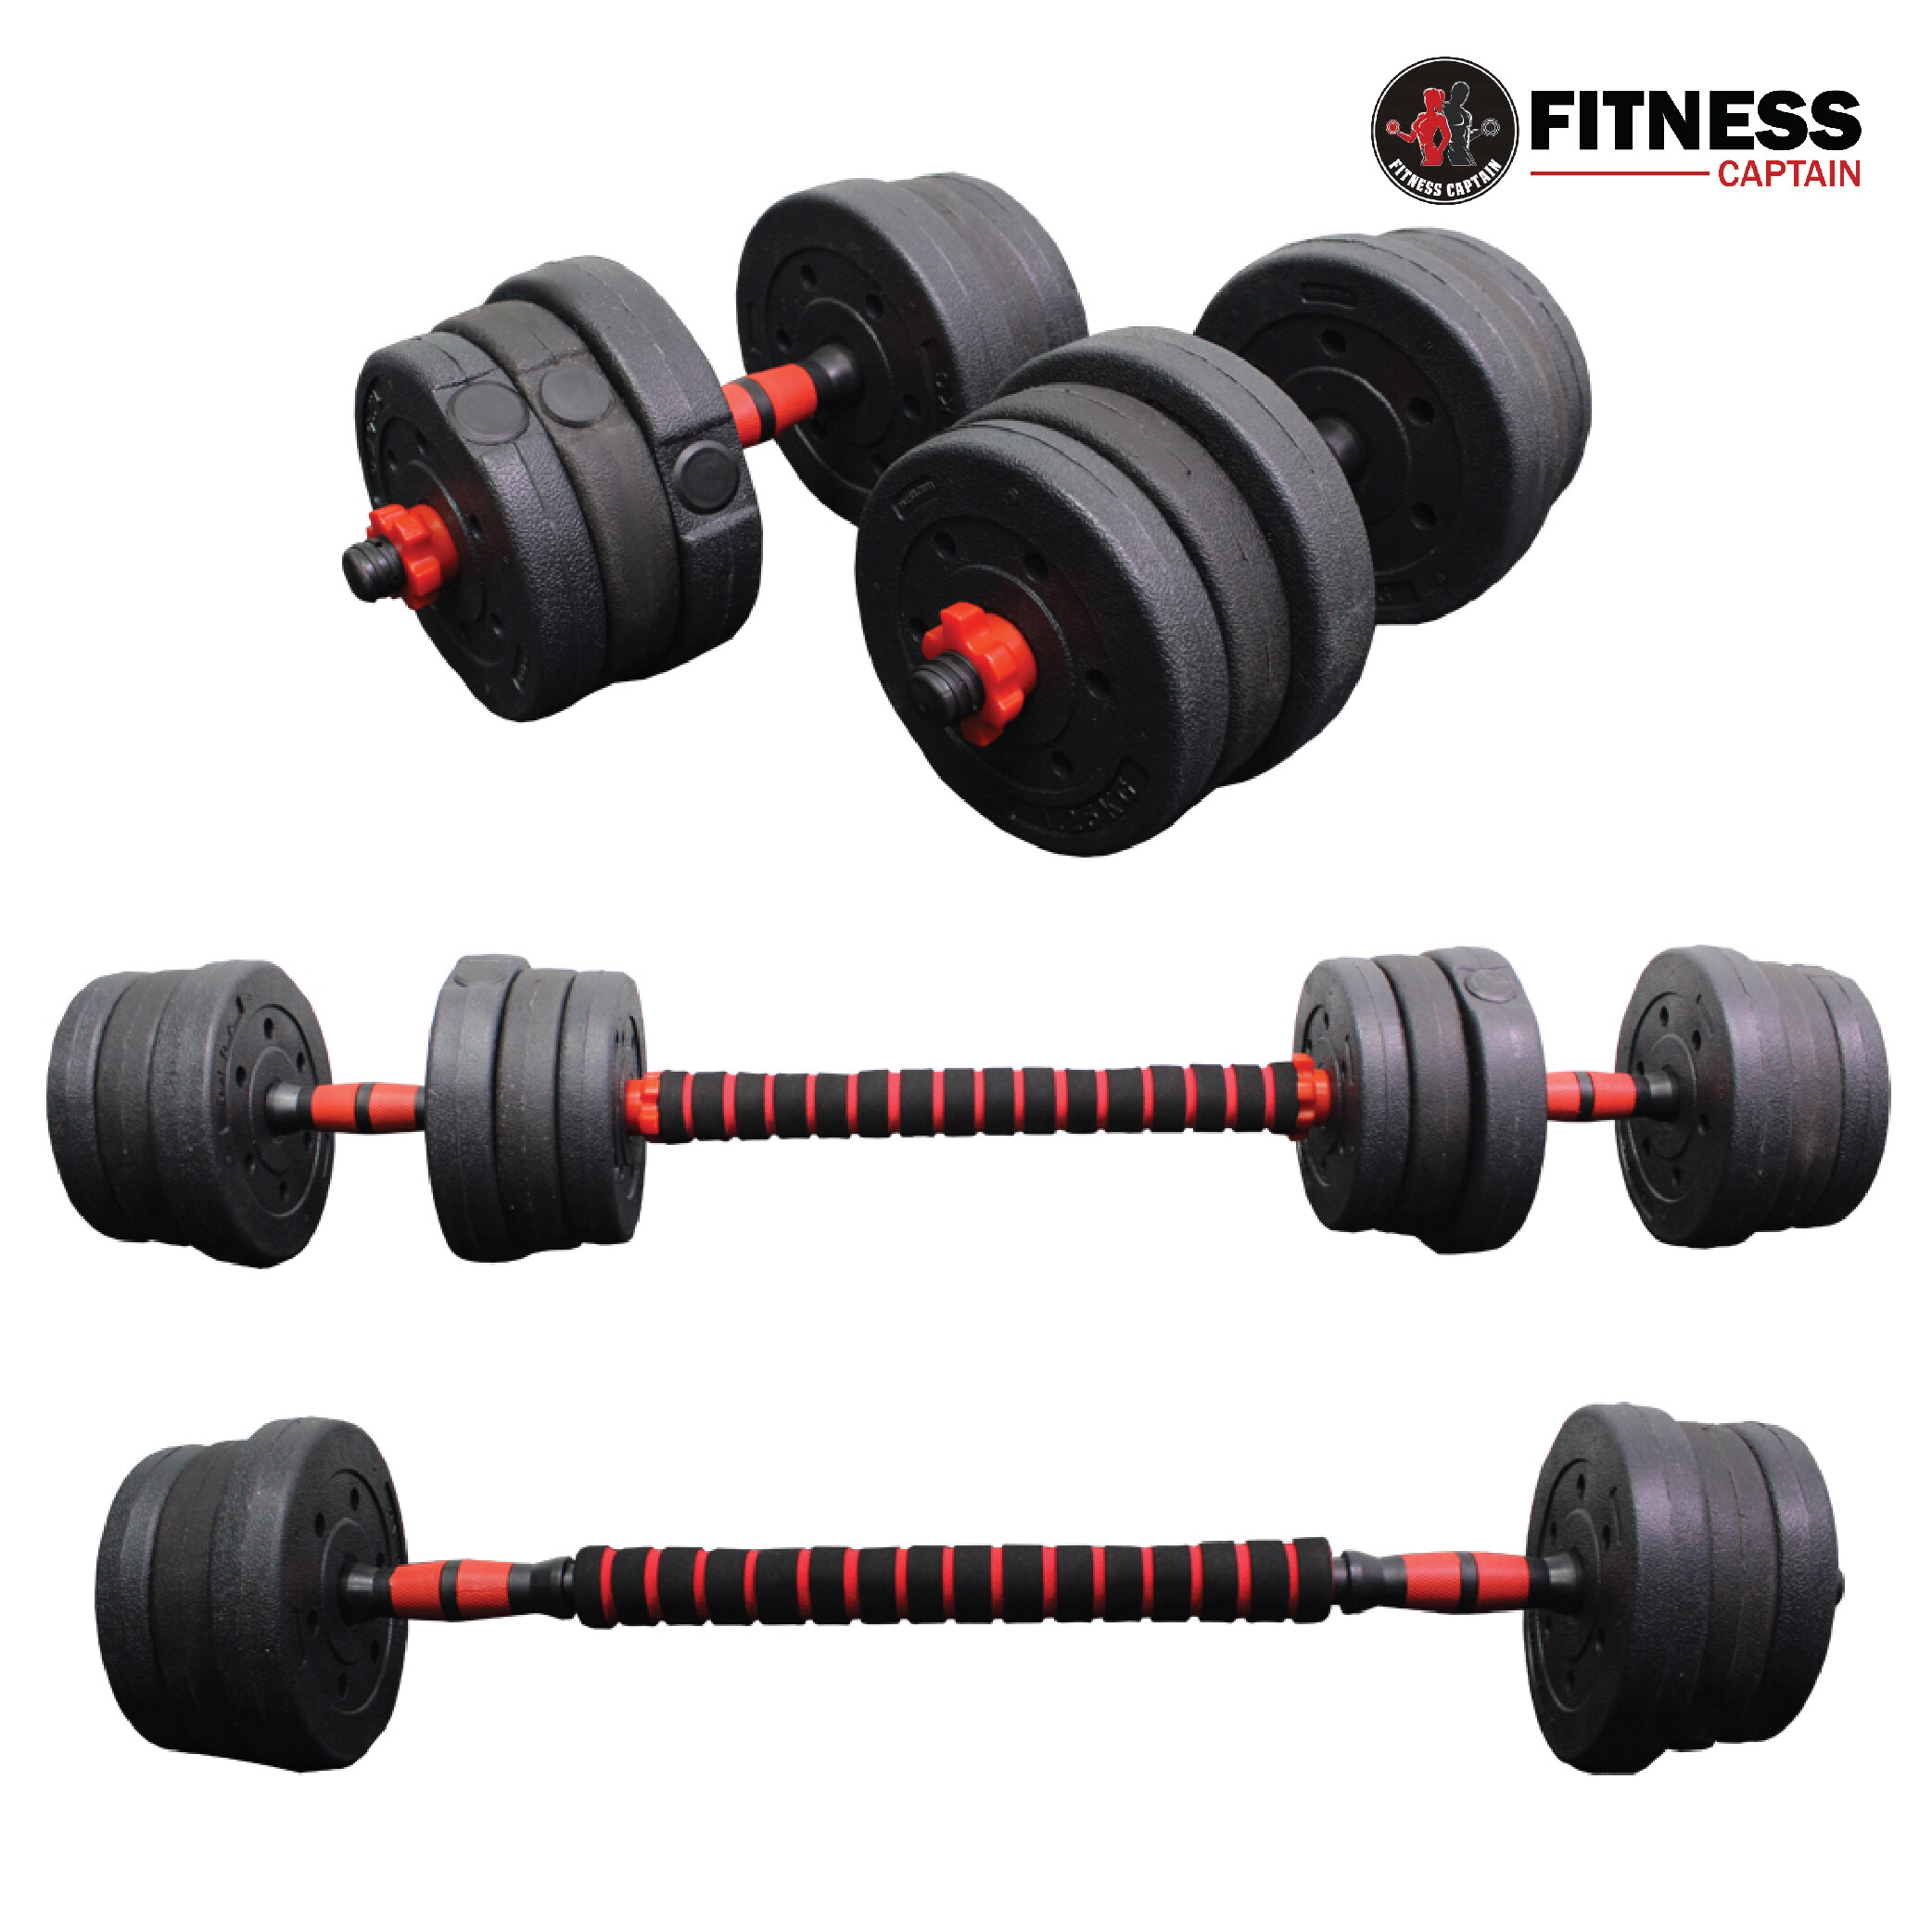 Fitness Captain Gym 20kg Adjustable Bumper Plate Dumbbell And Barbell Combo Set